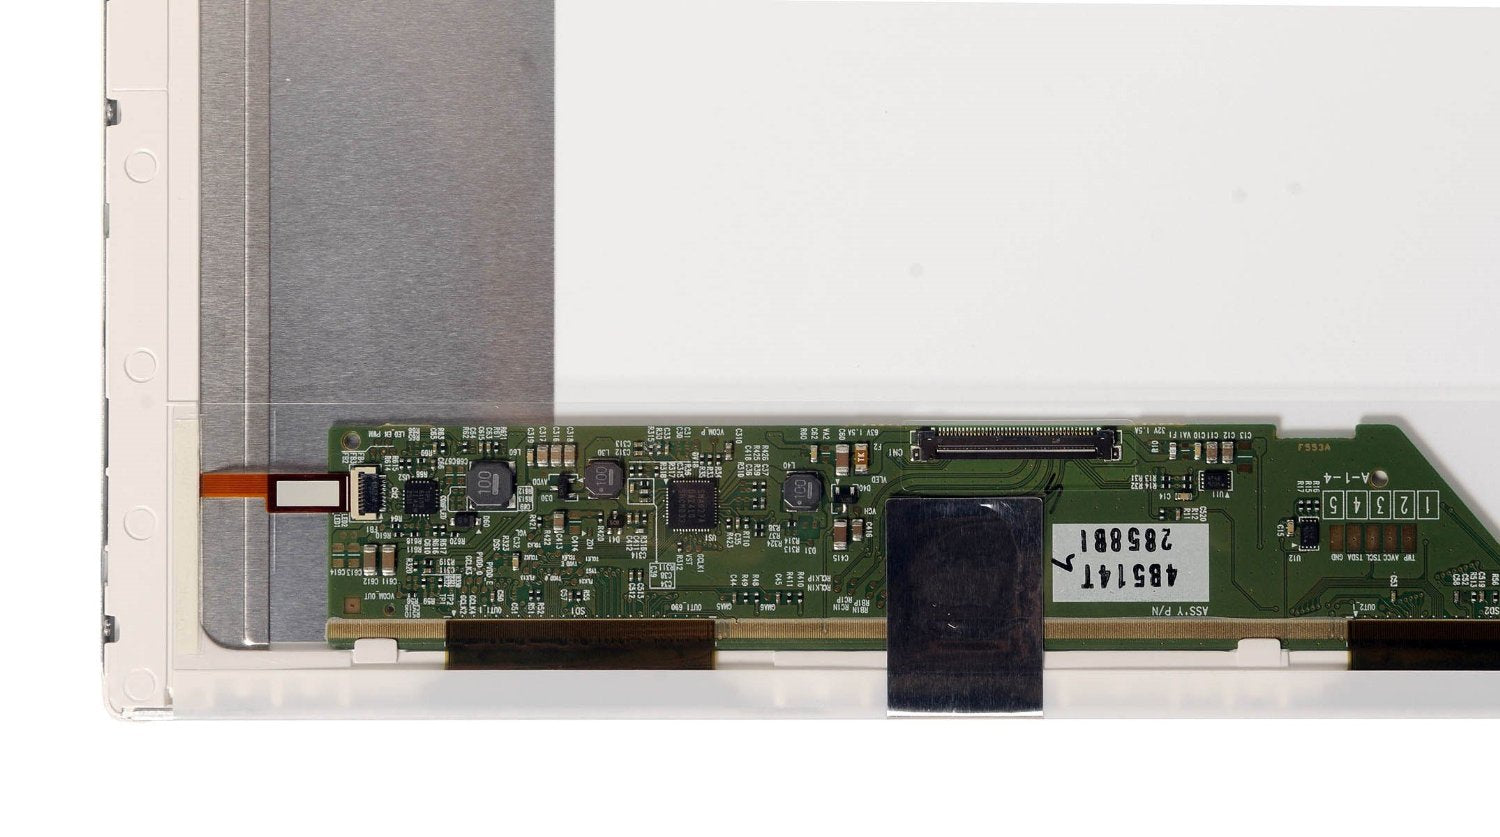 "ACER ASPIRE AS5733-6838 5733-6838 / 5733-6410 AS5733-6410 New 15.6"" Laptop LED LCD Screen with Glossy Finish and HD WXGA"